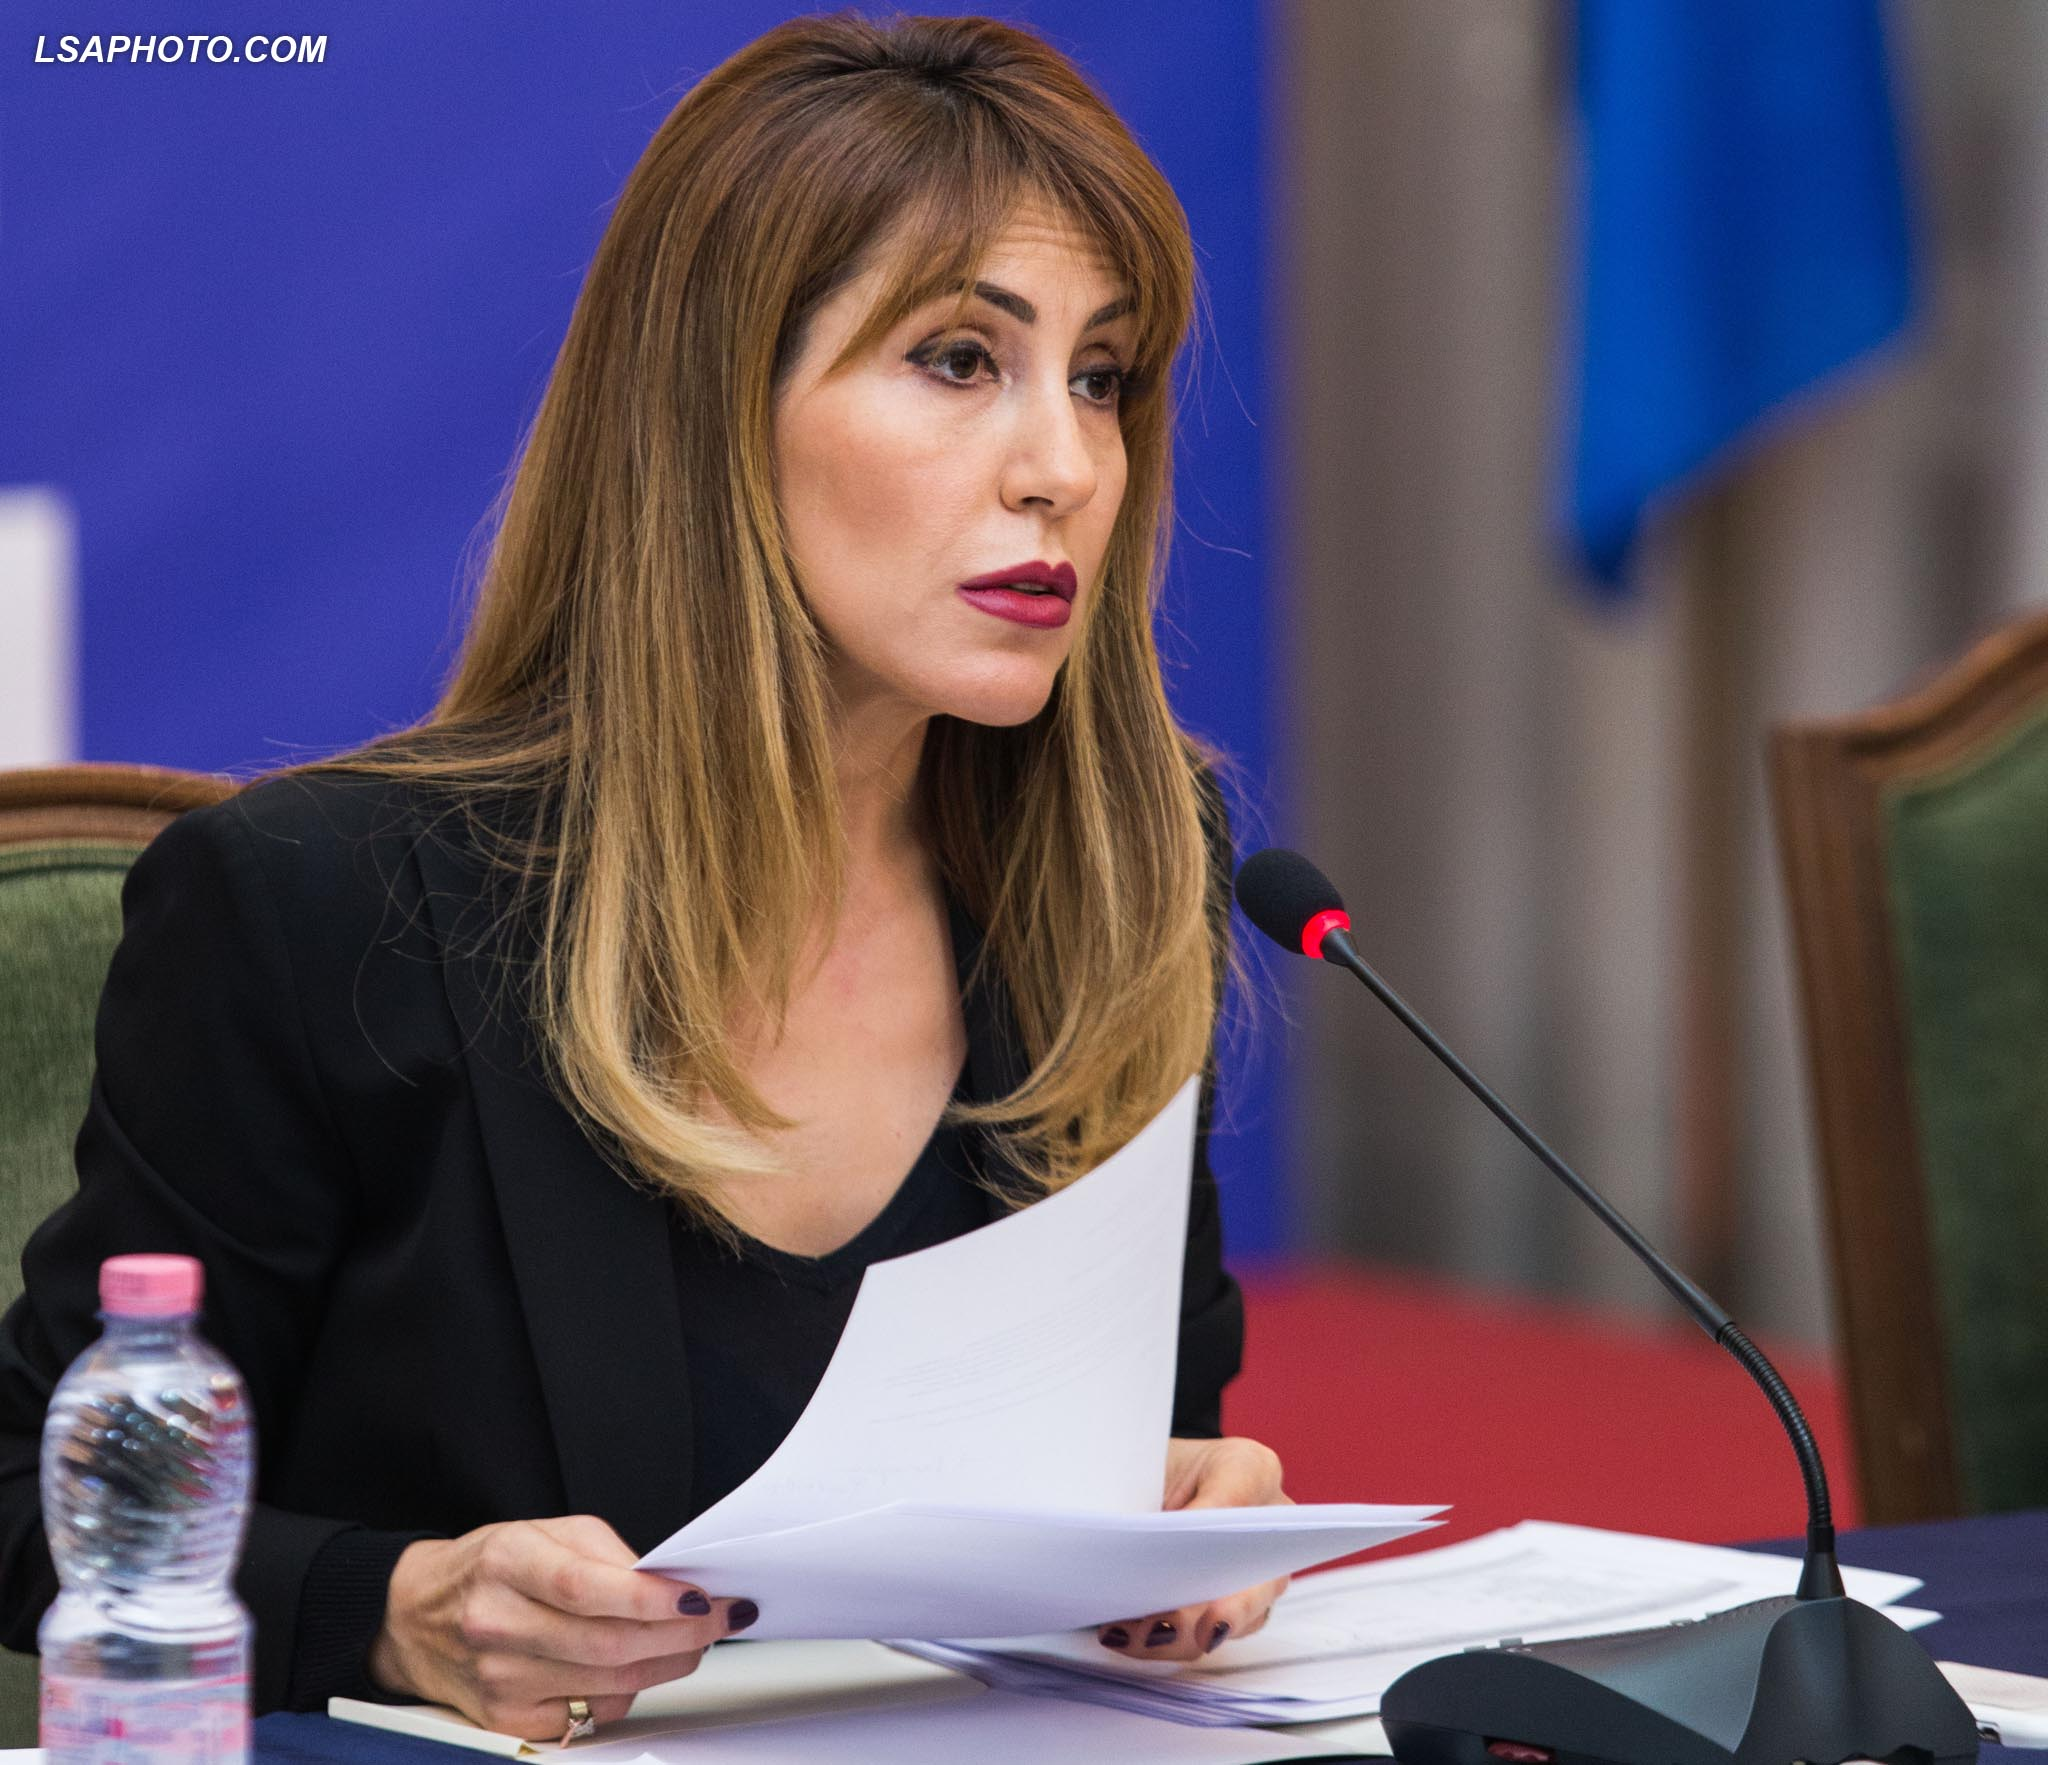 Albanian politician Majlinda Bregu takes office as the Secretary General of the Regional Cooperation Council